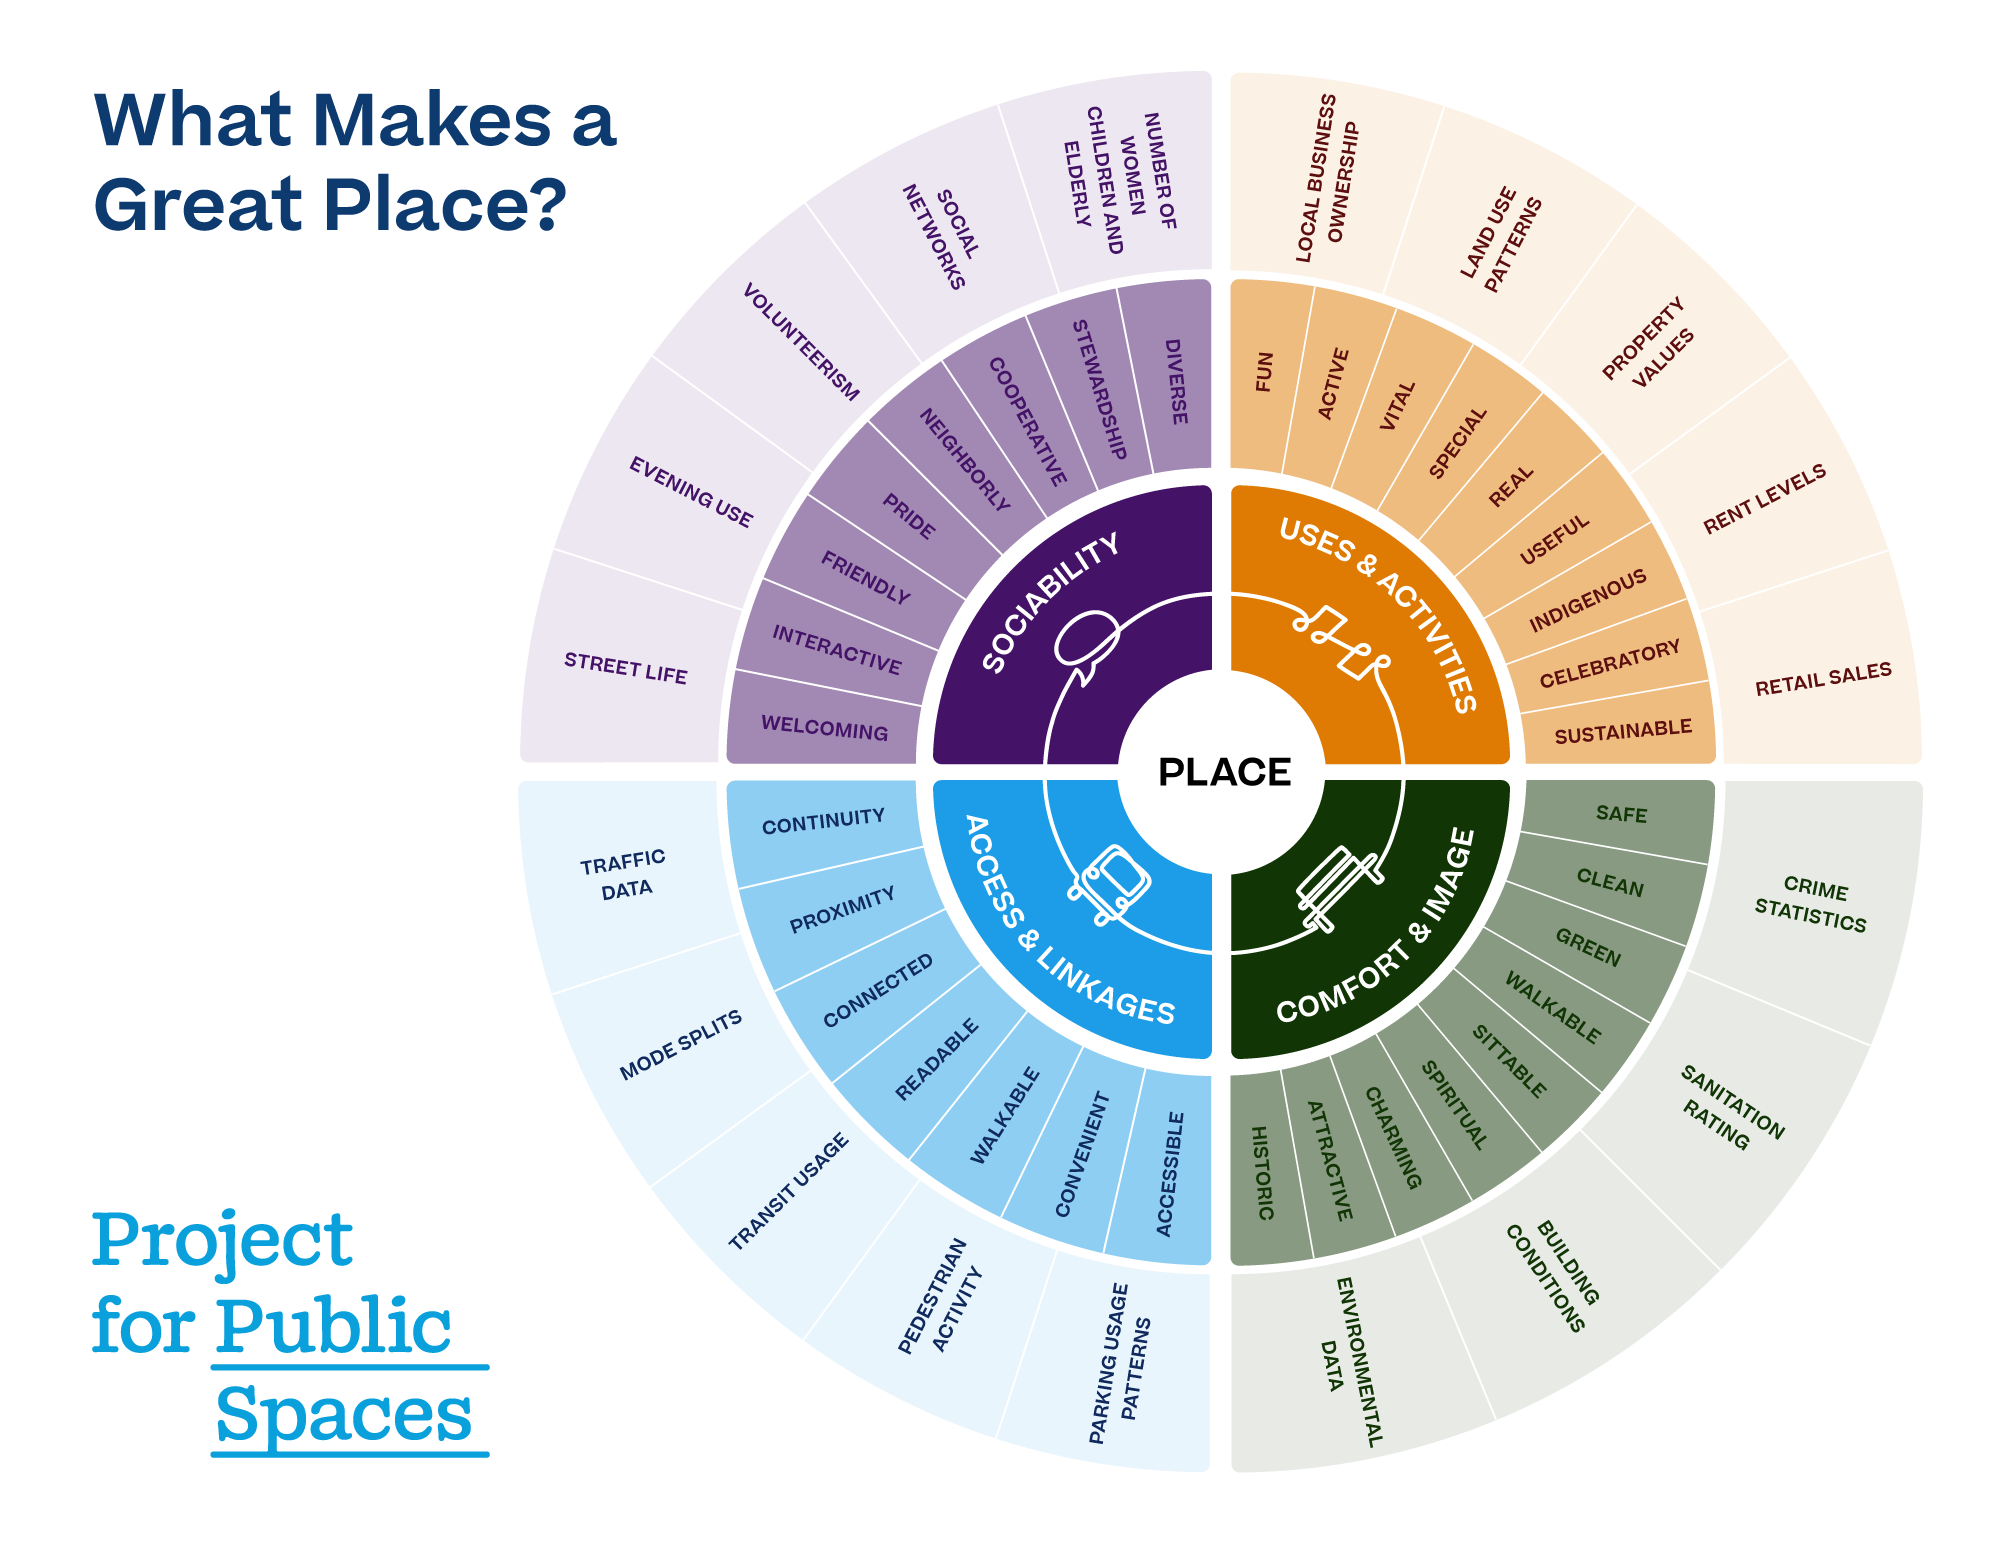 What makes a Public Space Great?